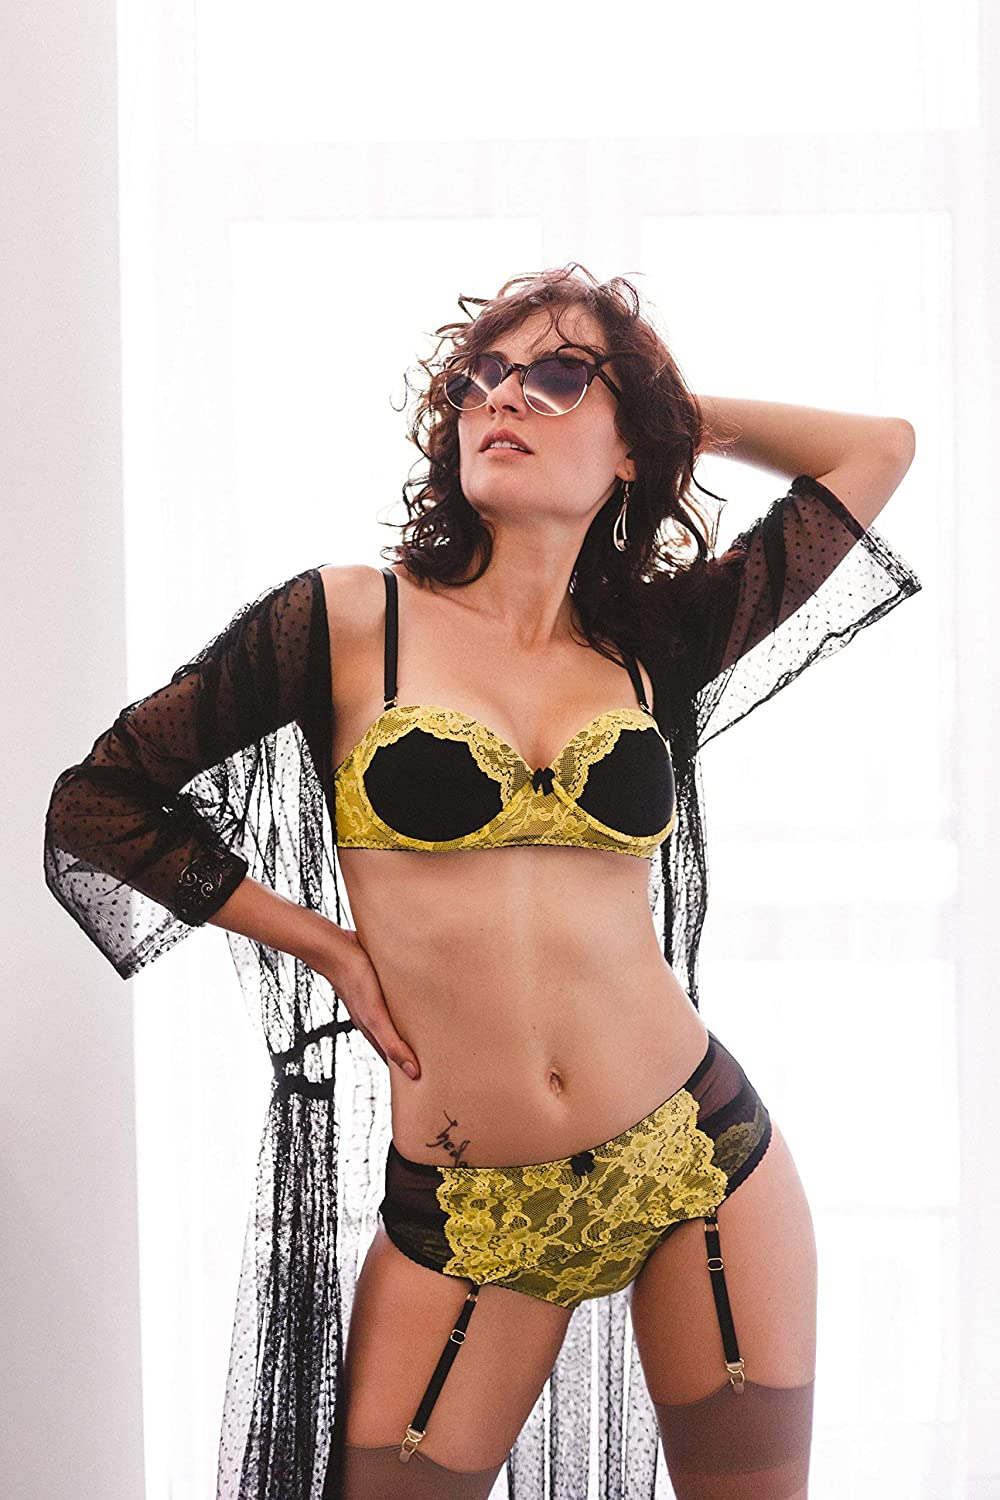 3d2bb70b96 Amazon.com  Push up bra Yellow lingerie set with stocking belt ⇼ Lace  lingerie set with belt ⇼ Sexy lingerie of yellow and black color  Handmade